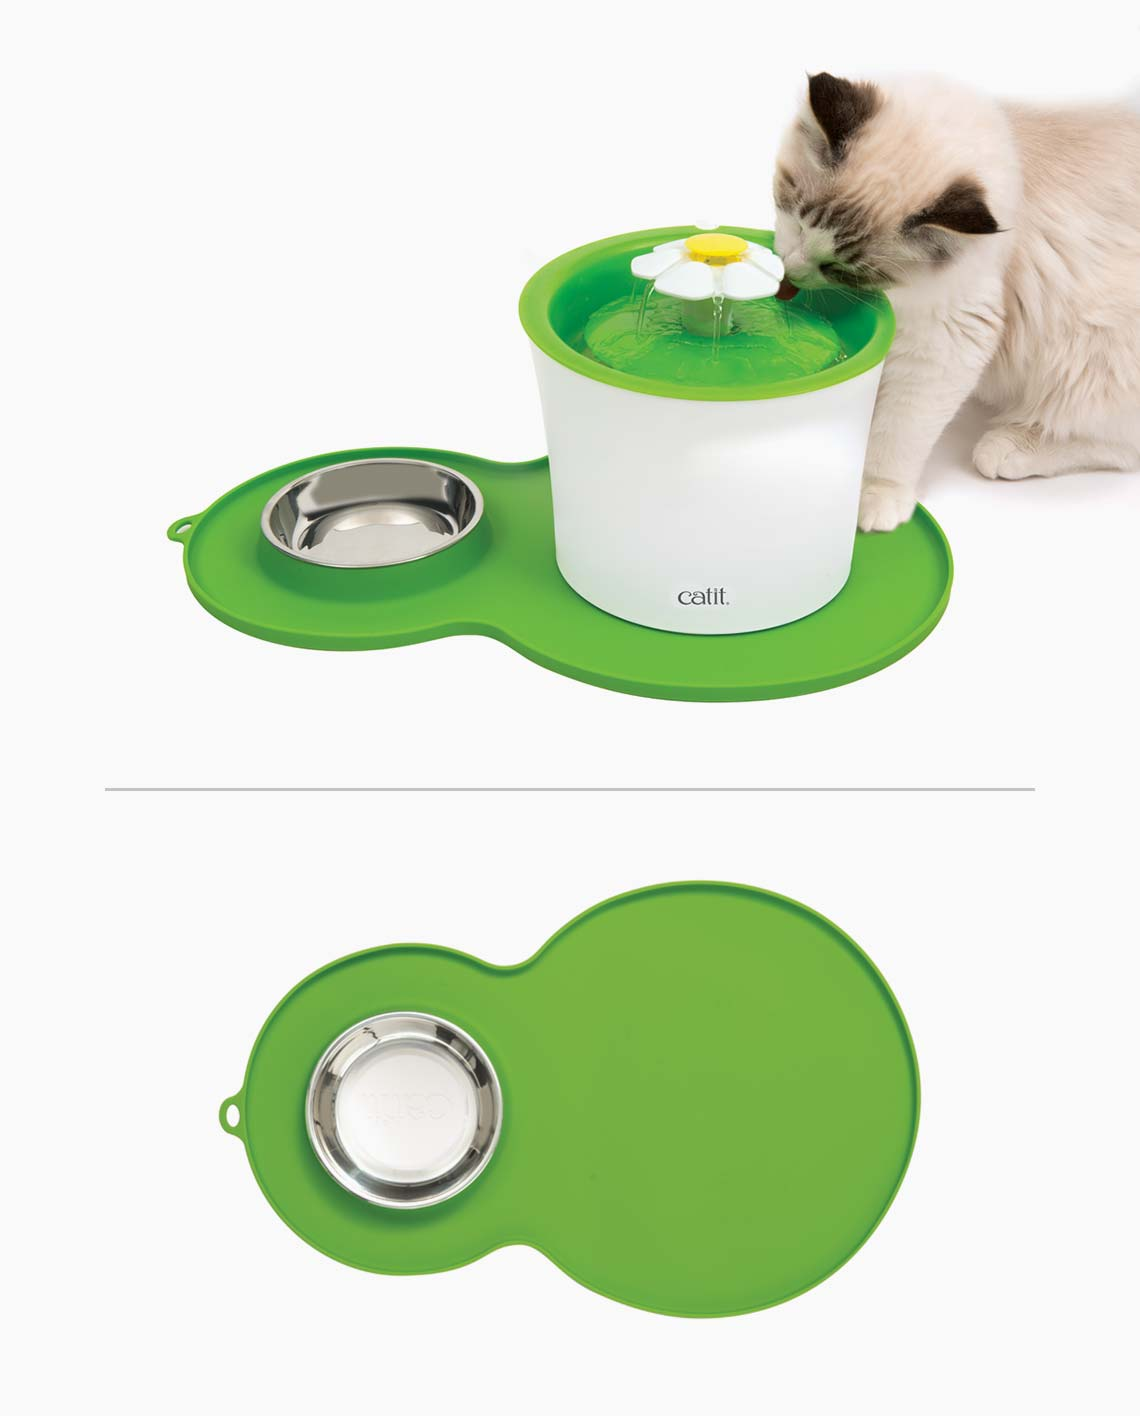 Cute cat drinking from a flower fountain on a peanute placemat